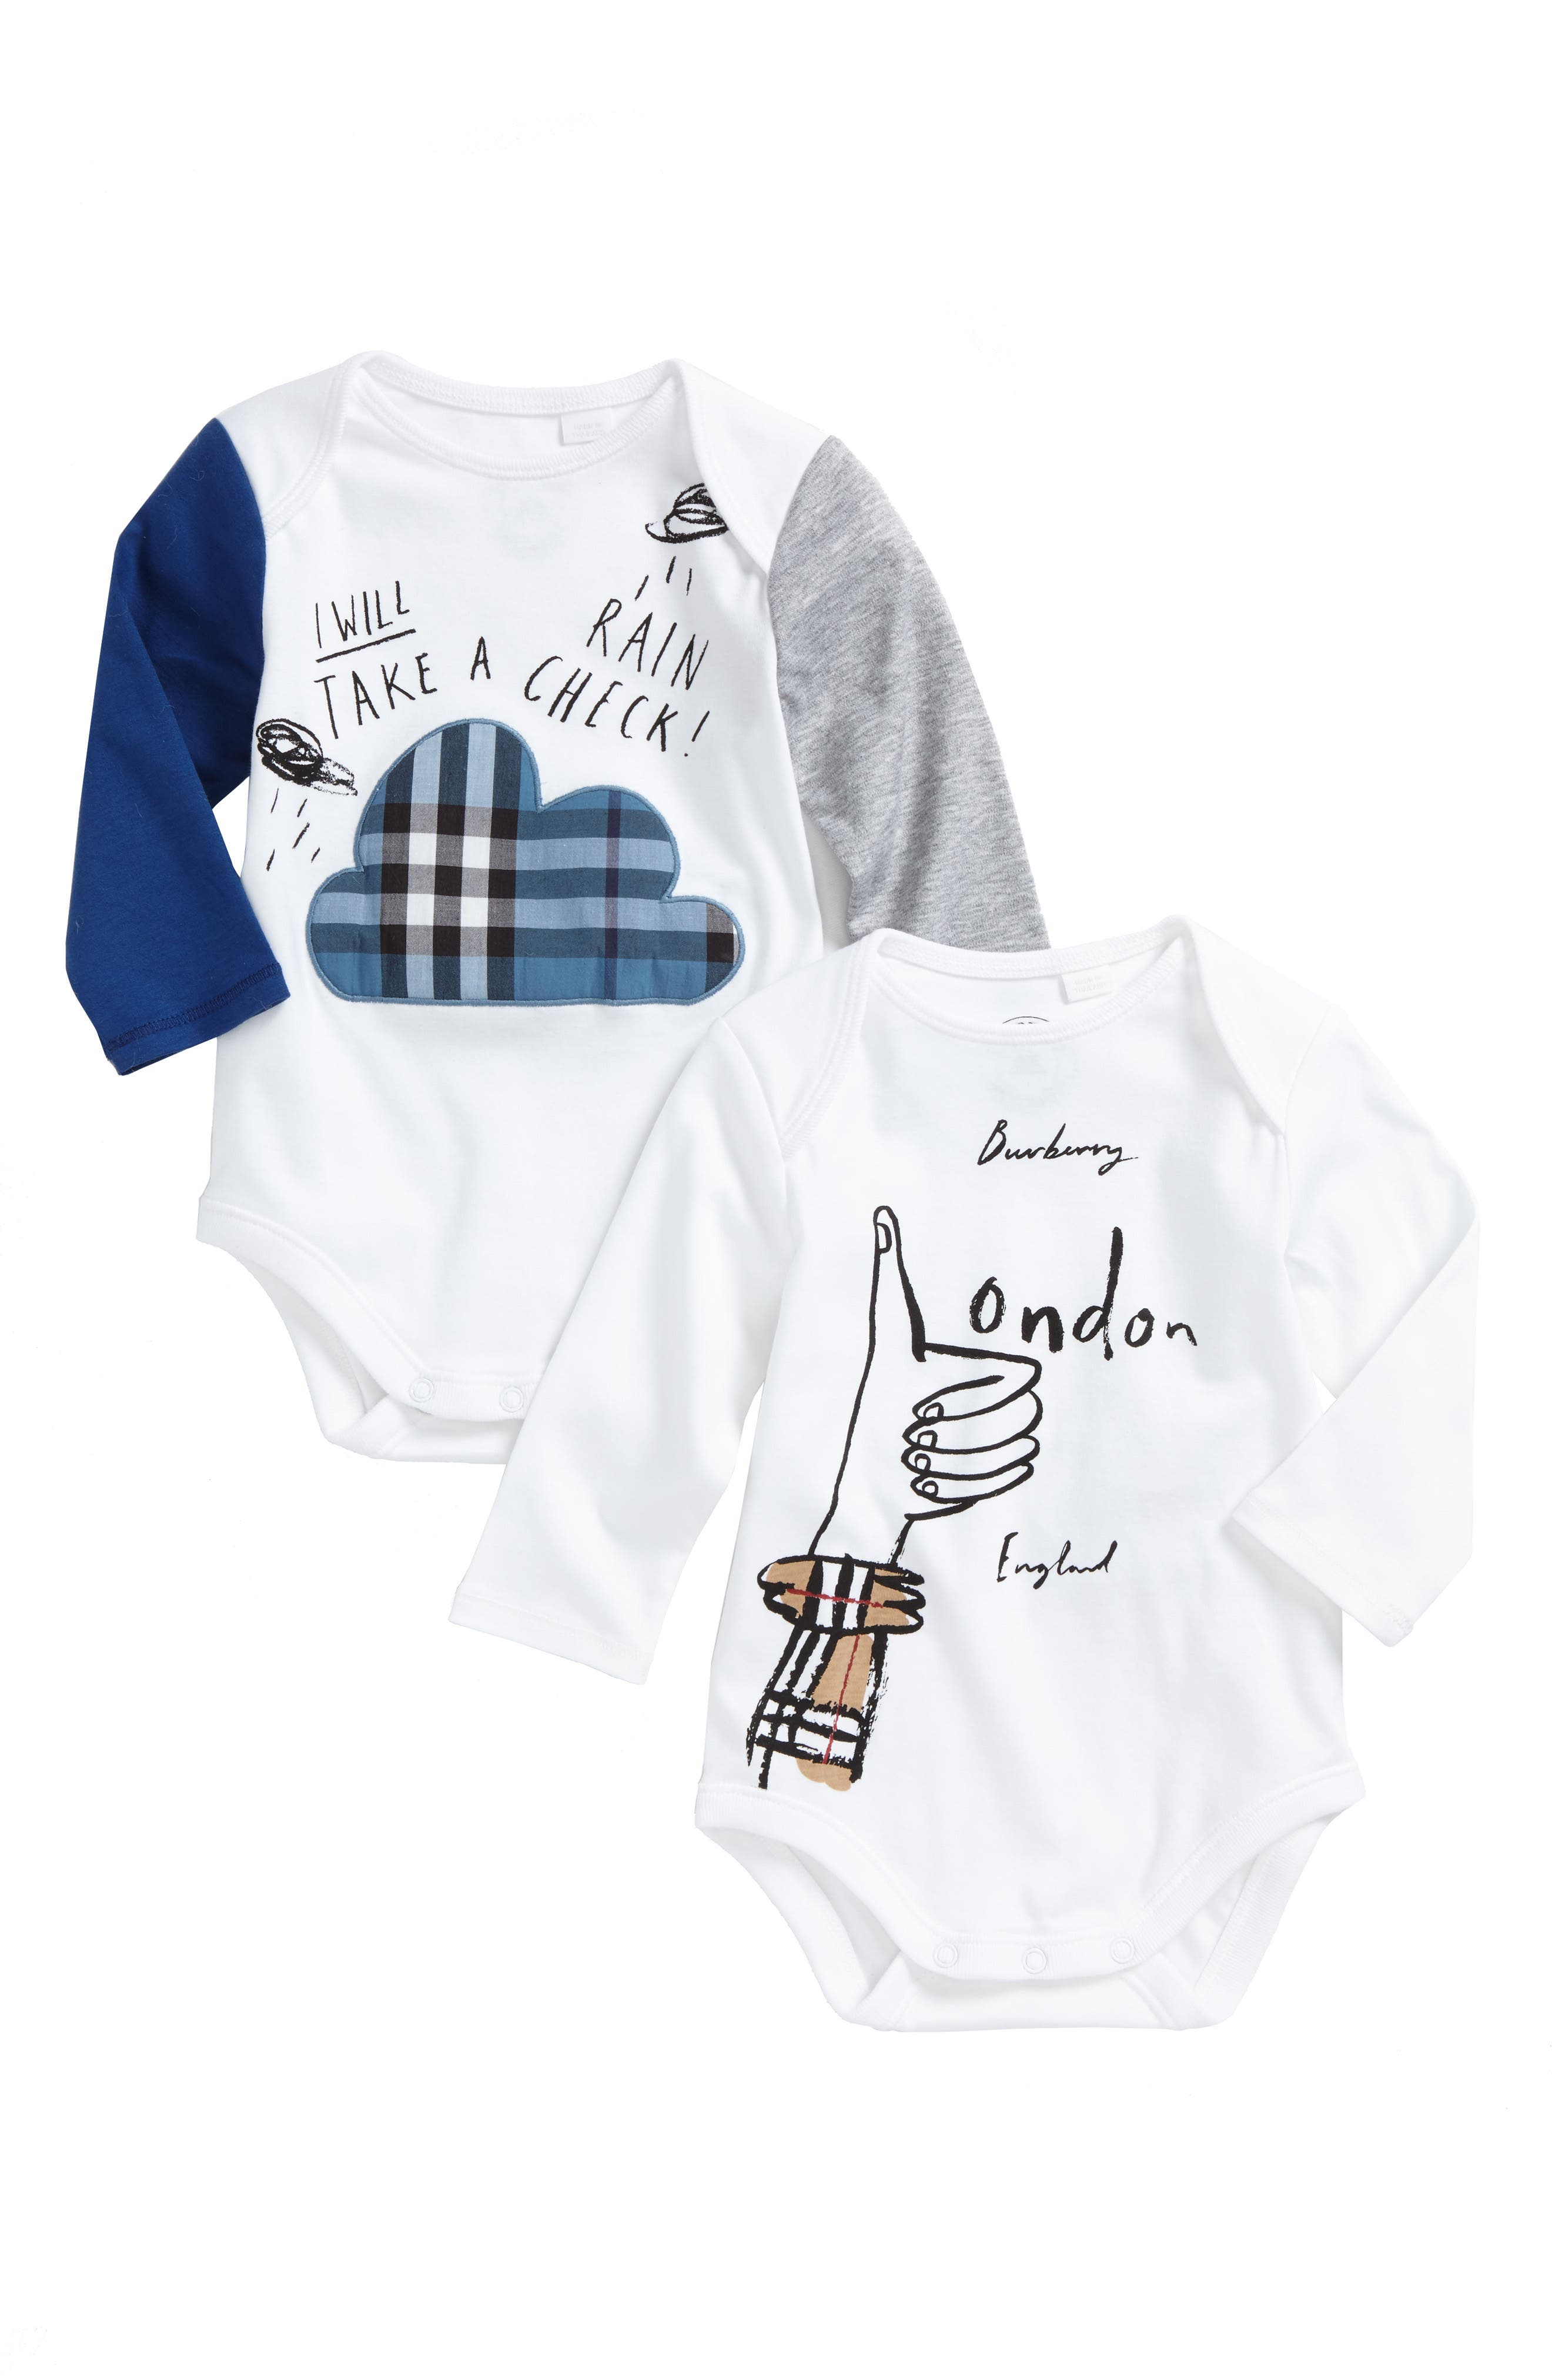 Burberry 2-Pack Bodysuits (Baby Boys)